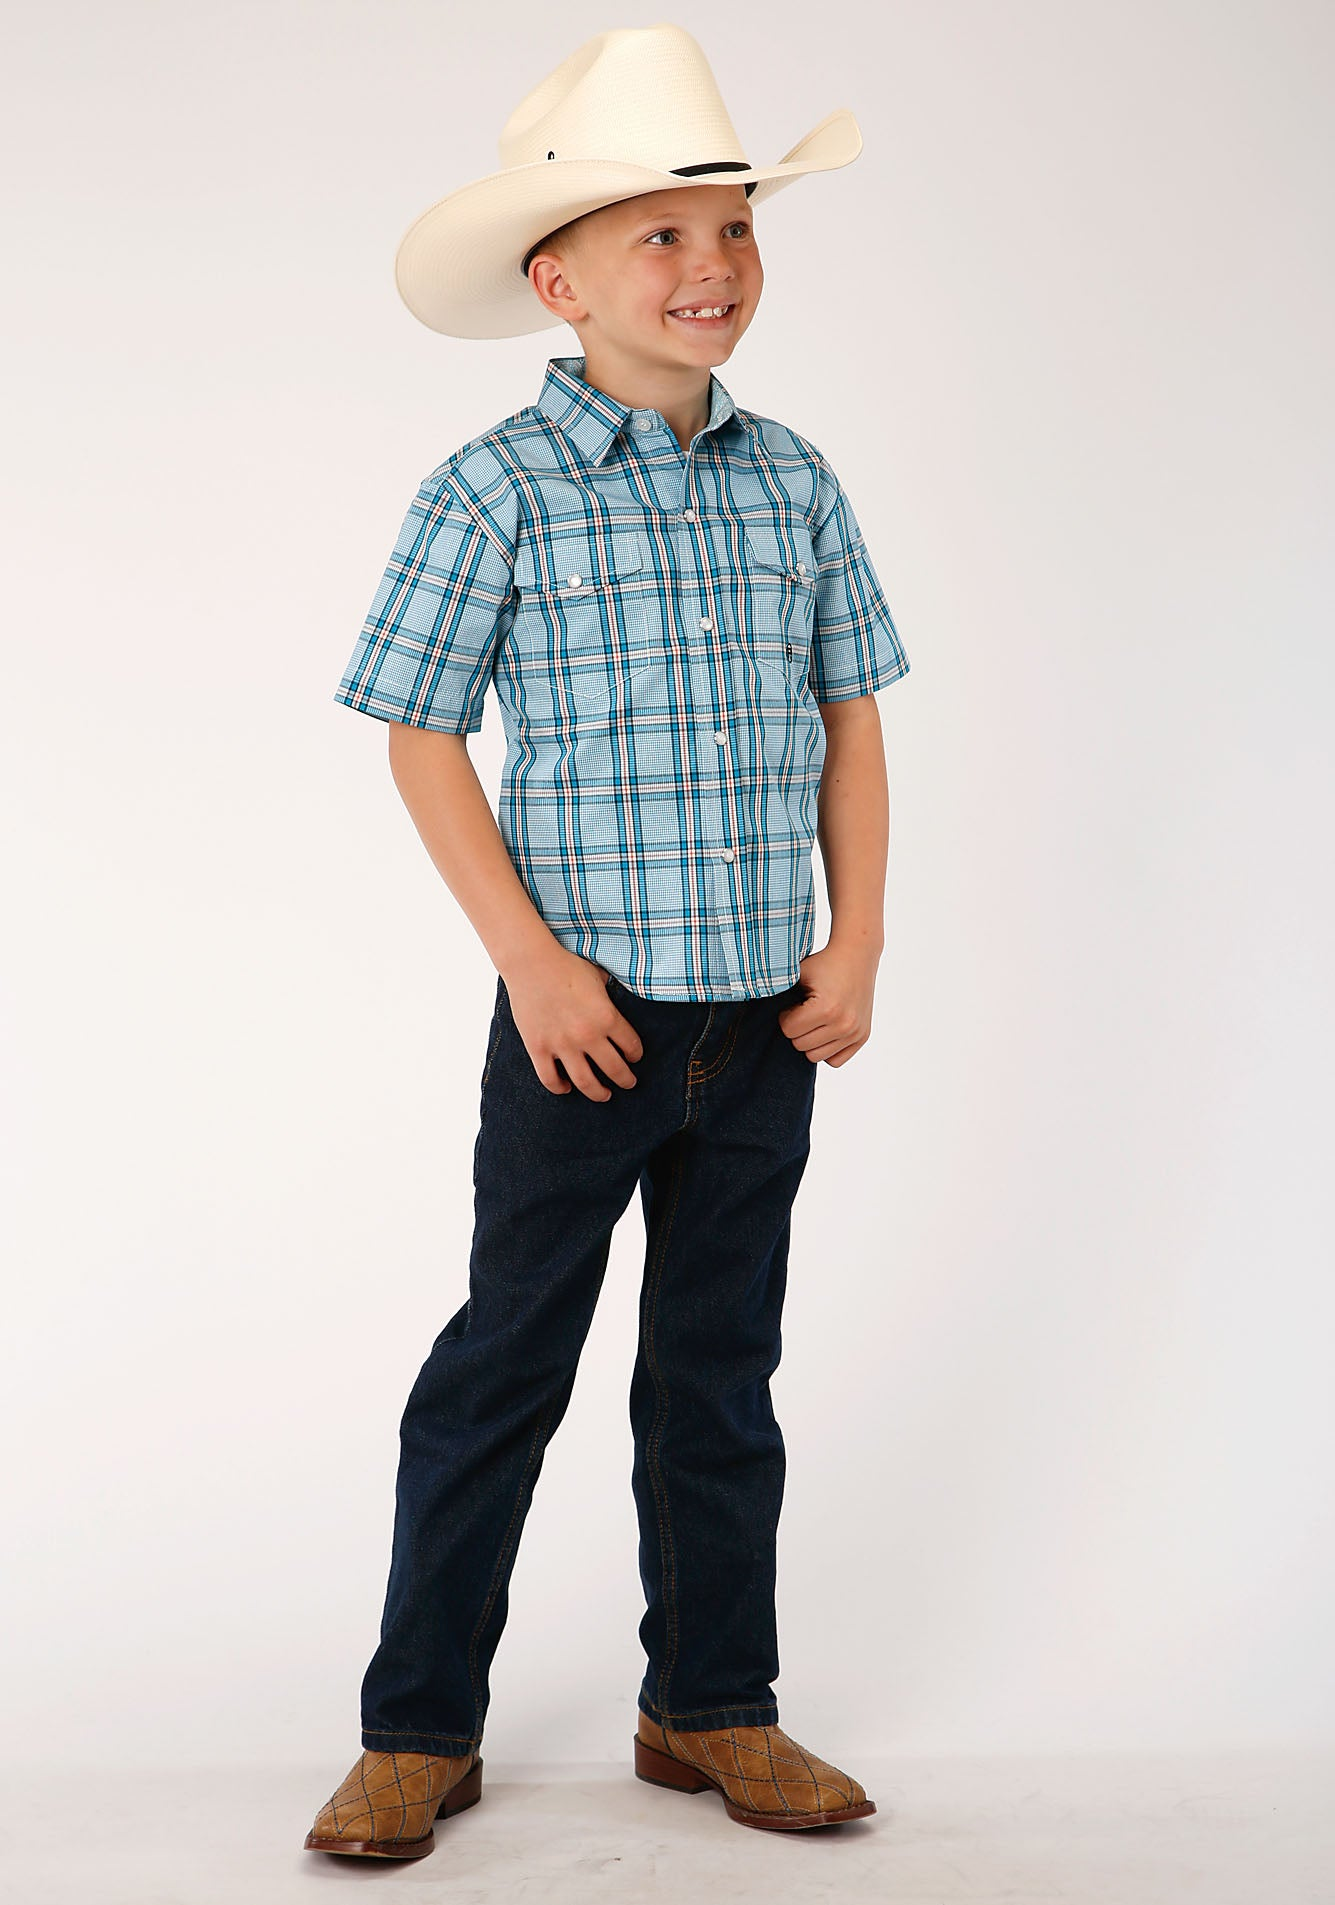 ROPER BOYS BLUE 00017 COLD CREEK PLAID BOYS AMARILLO COLLECTION- OASIS SHORT SLEEVE